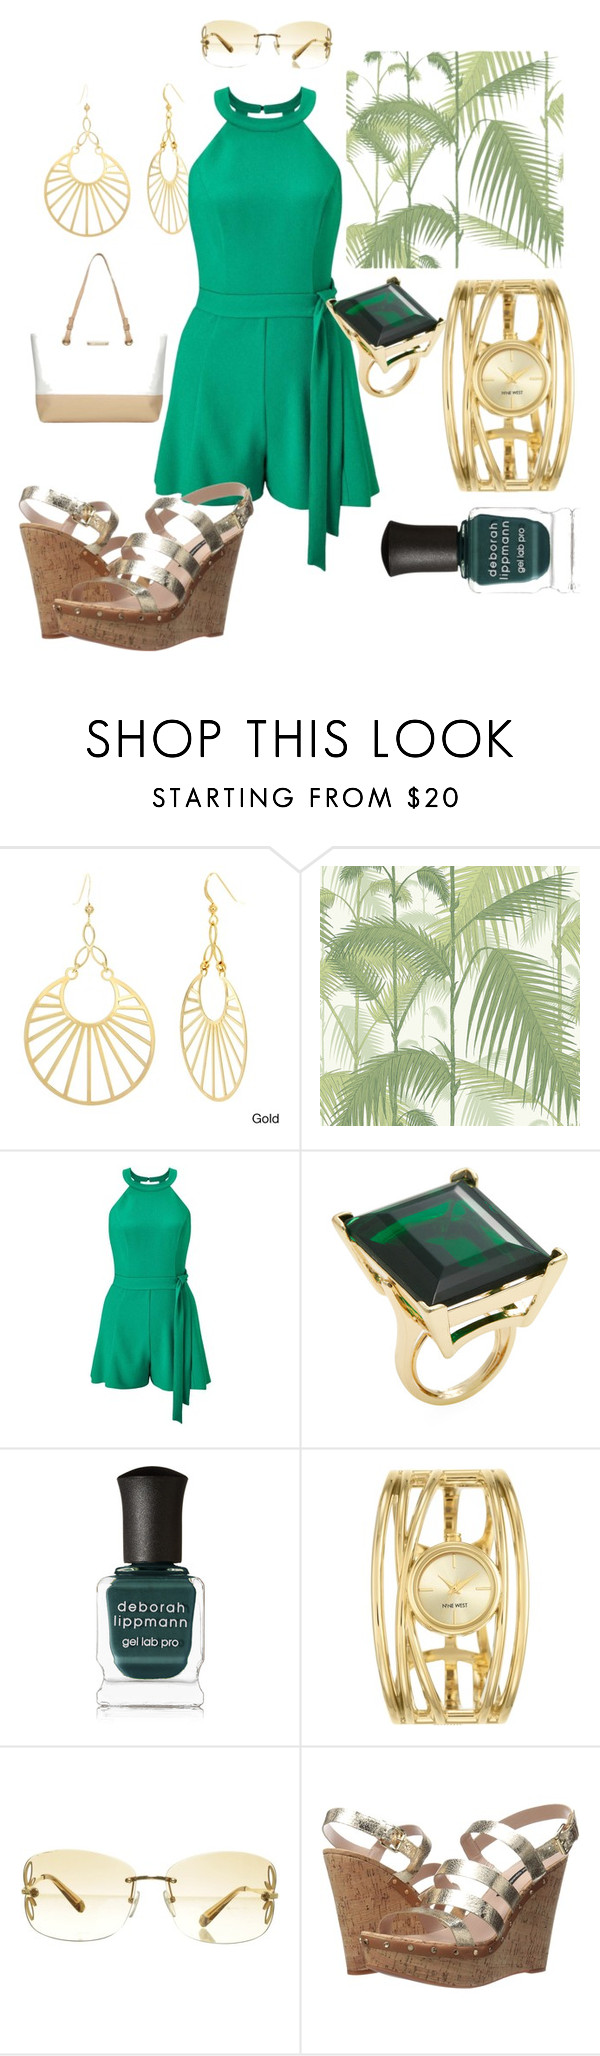 """""""Florida Flair"""" by rebel-coated ❤ liked on Polyvore featuring Sterling Essentials, Cole & Son, Miss Selfridge, Kenneth Jay Lane, Deborah Lippmann, Nine West, Louis Vuitton, French Connection and Dorothy Perkins"""